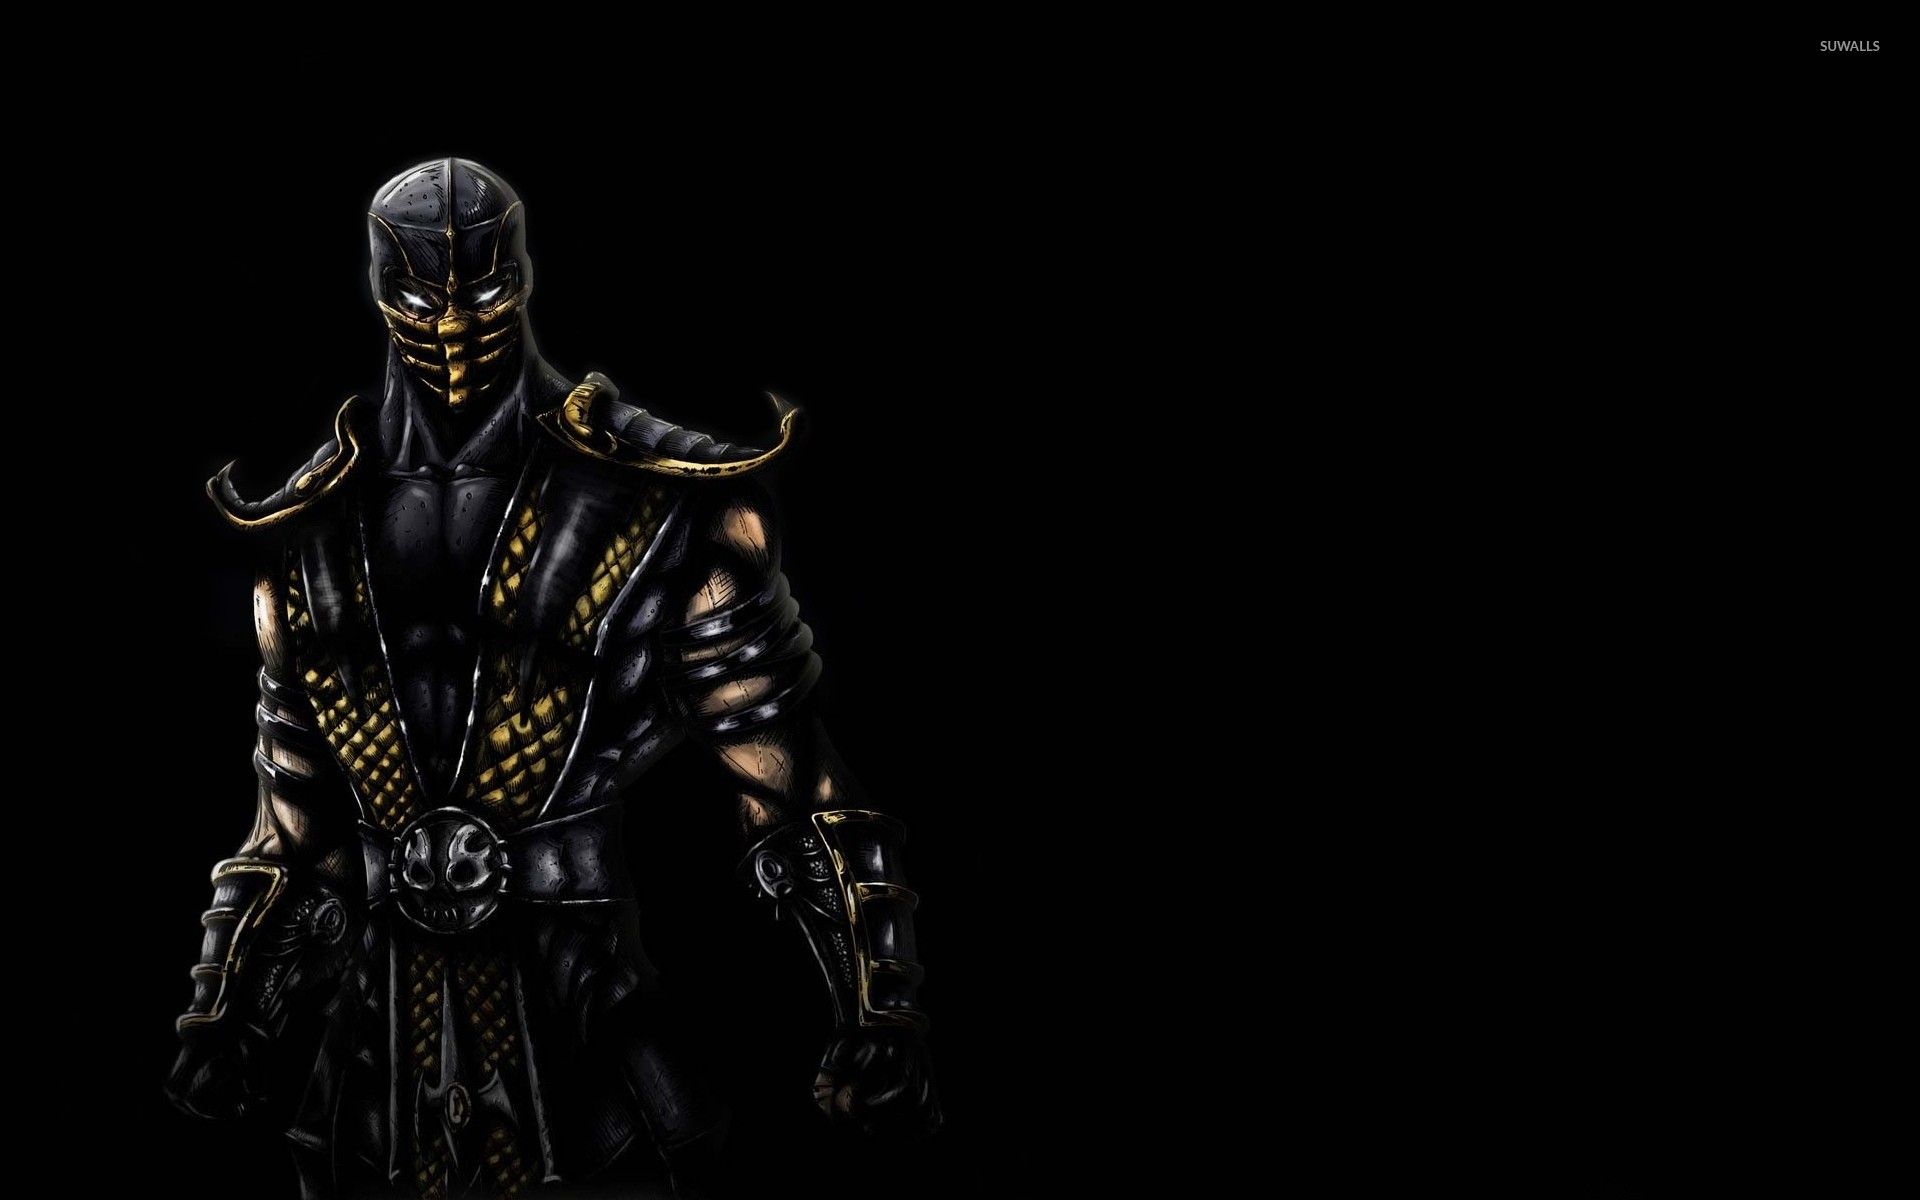 download-mortal-kombat-wallpapers-scorpion-x-for-ipad-pic-mch01738